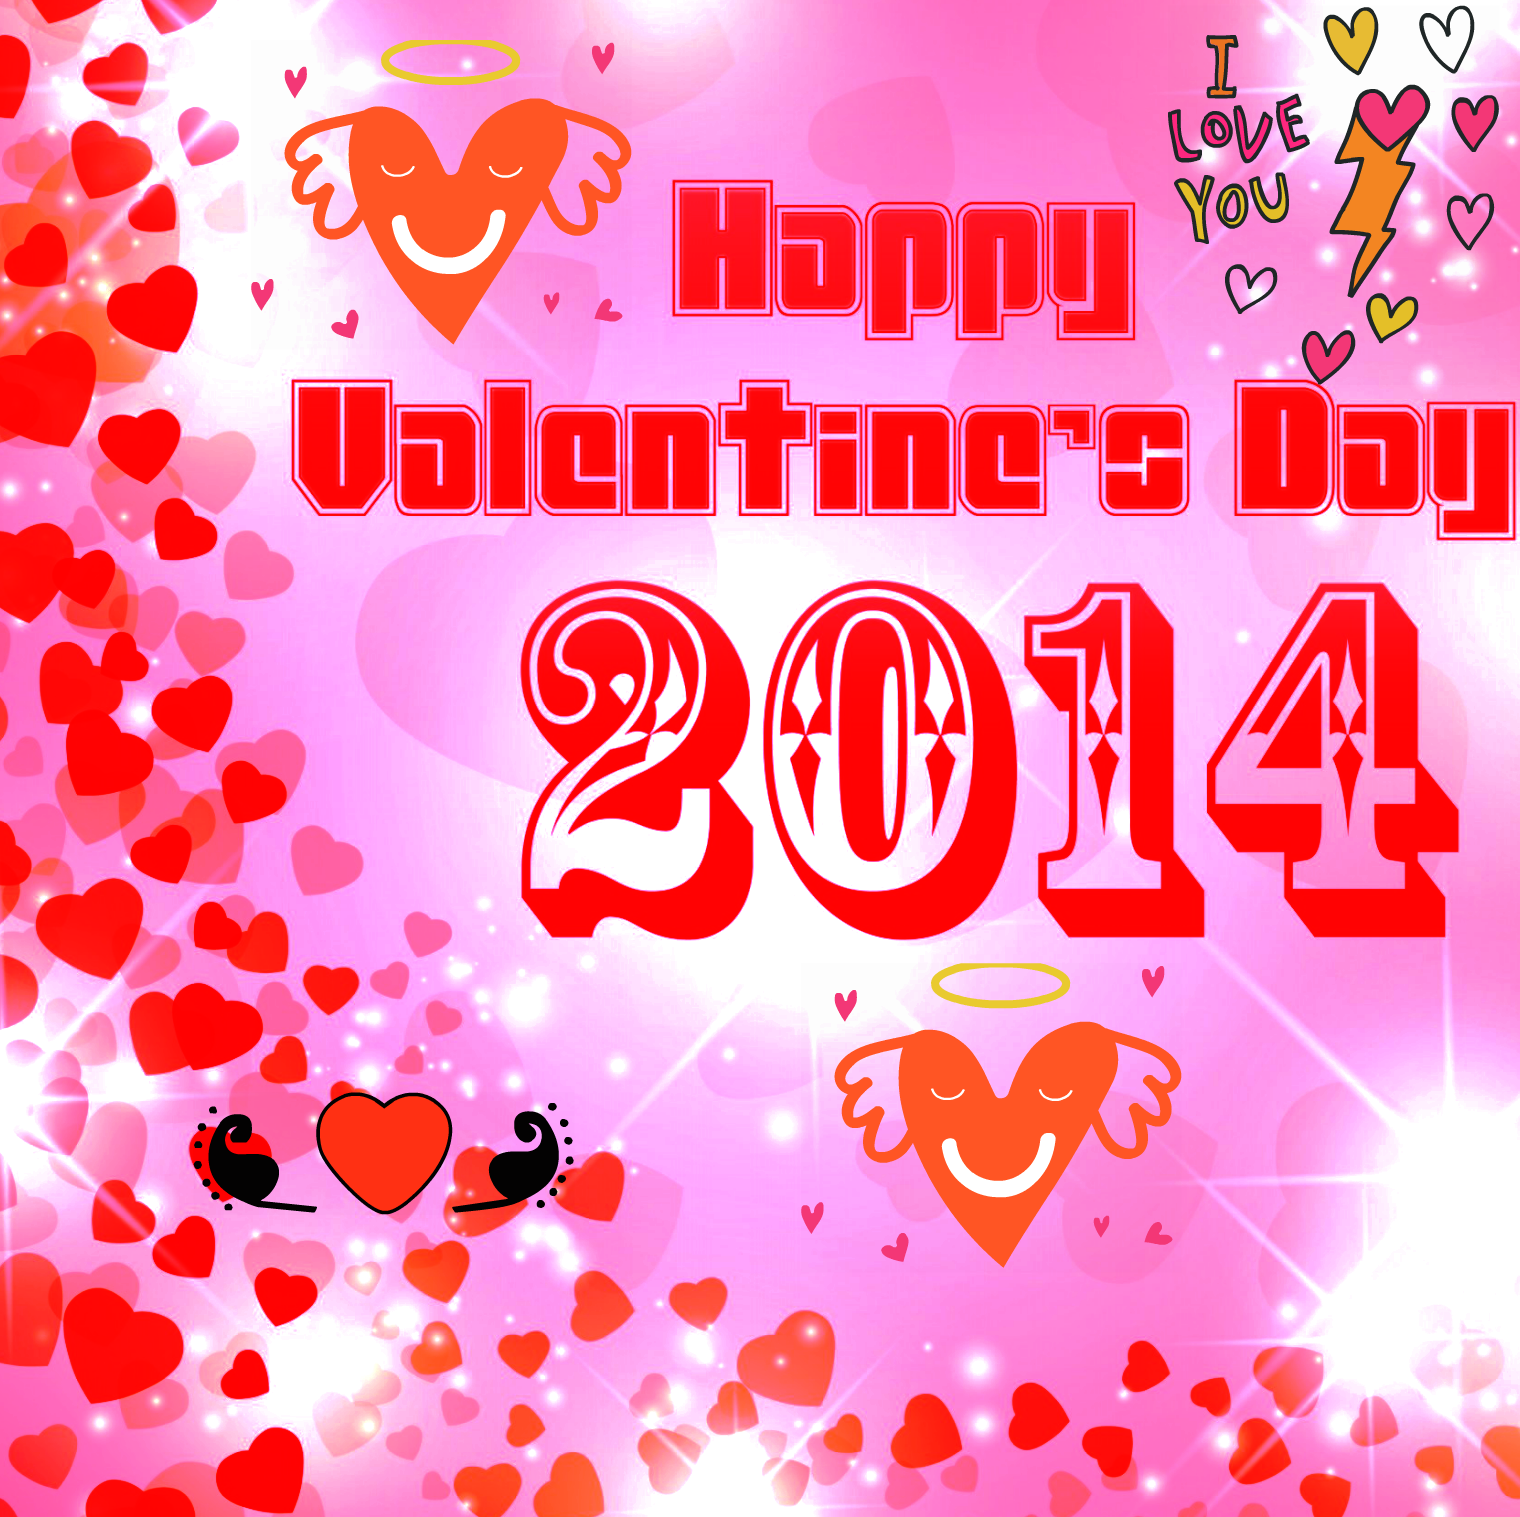 Happy Valentines Day 2014 Messages Sms Quotes Greetings For Her